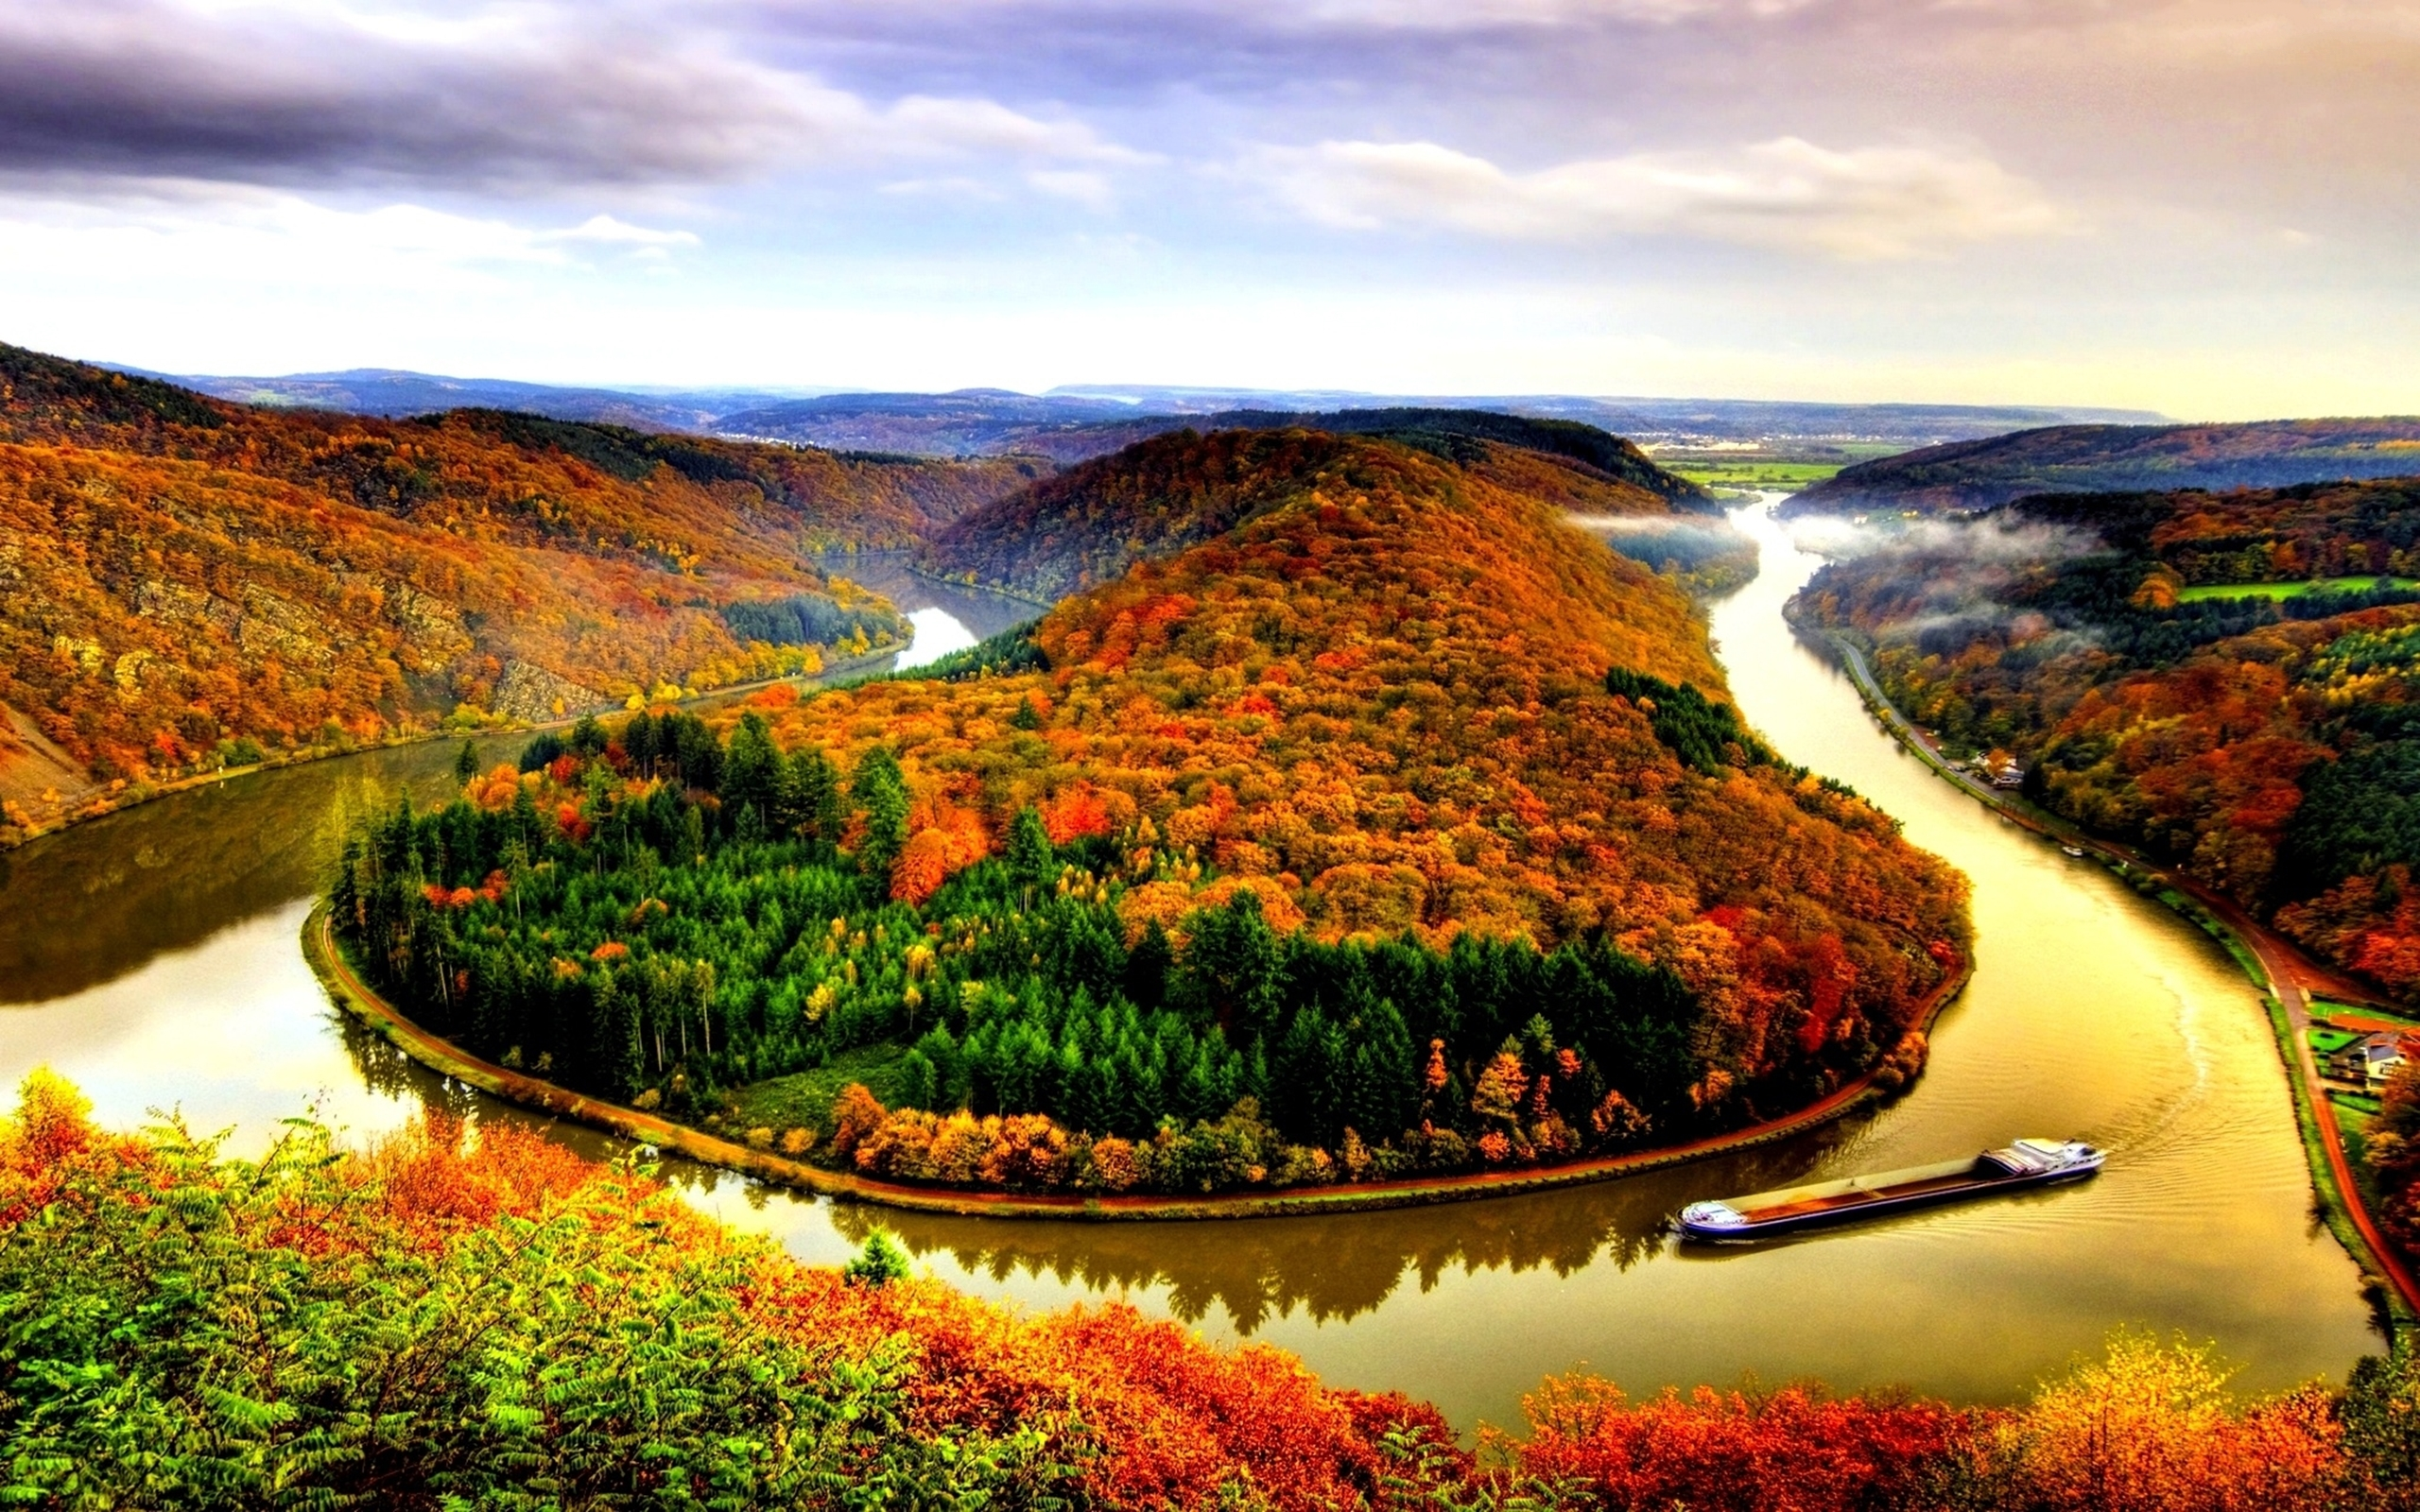 Free Fall Widescreen Wallpaper Autumn River Hd Wallpaper Pixelstalk Net